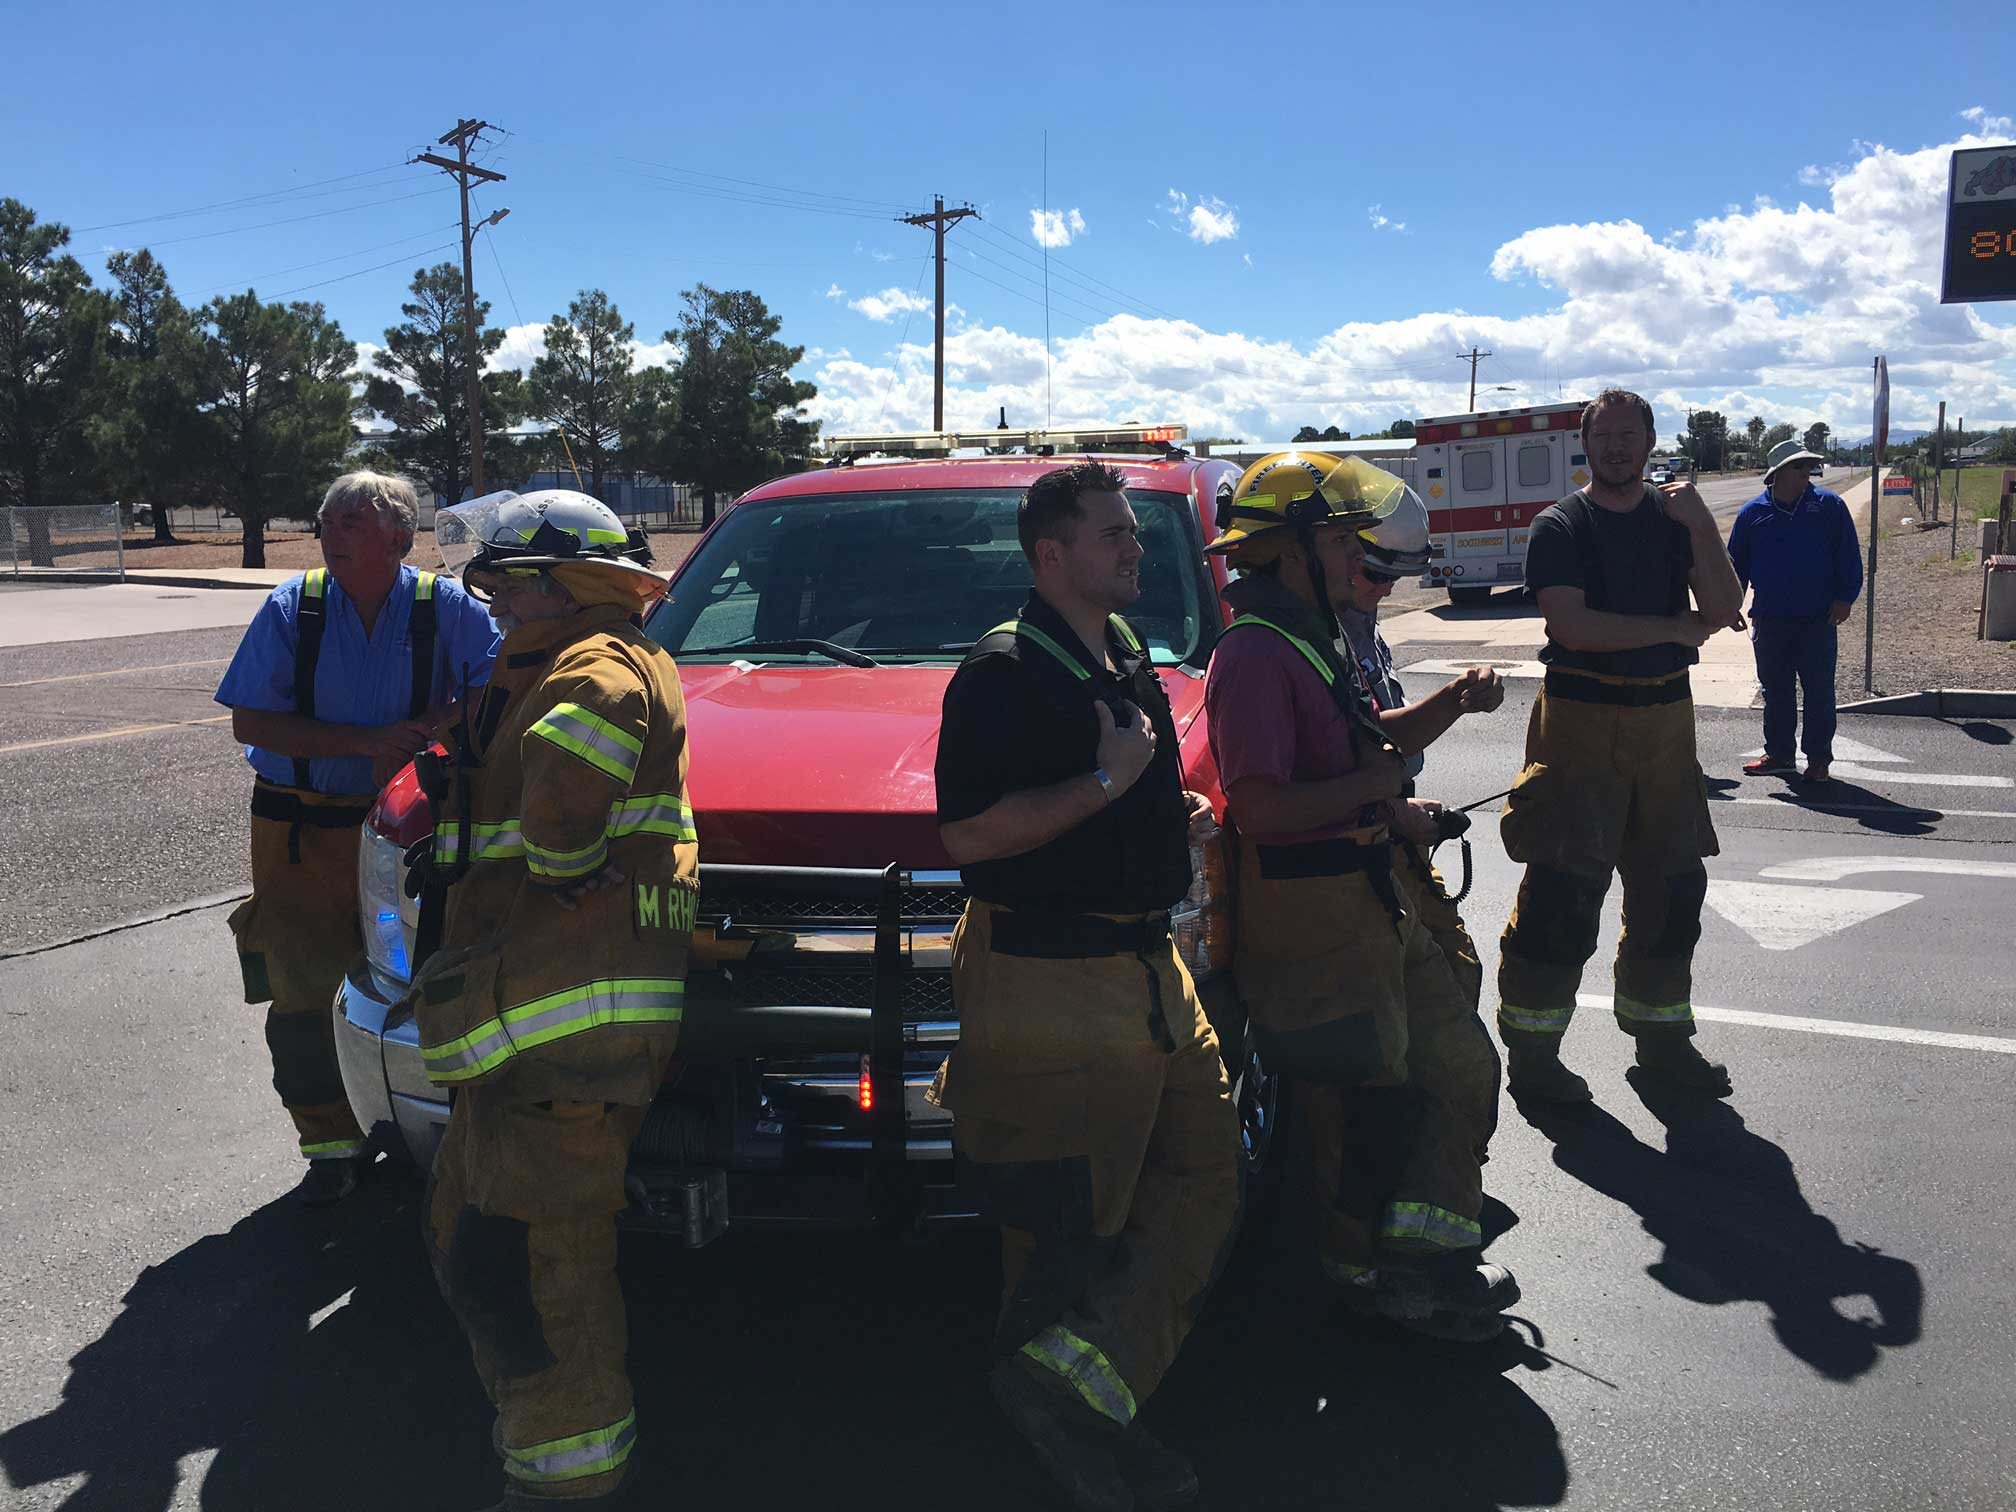 Jon Johnson Photo/Gila Valley Central: Firefighters await instruction during the Safford High School bomb threat hoax.